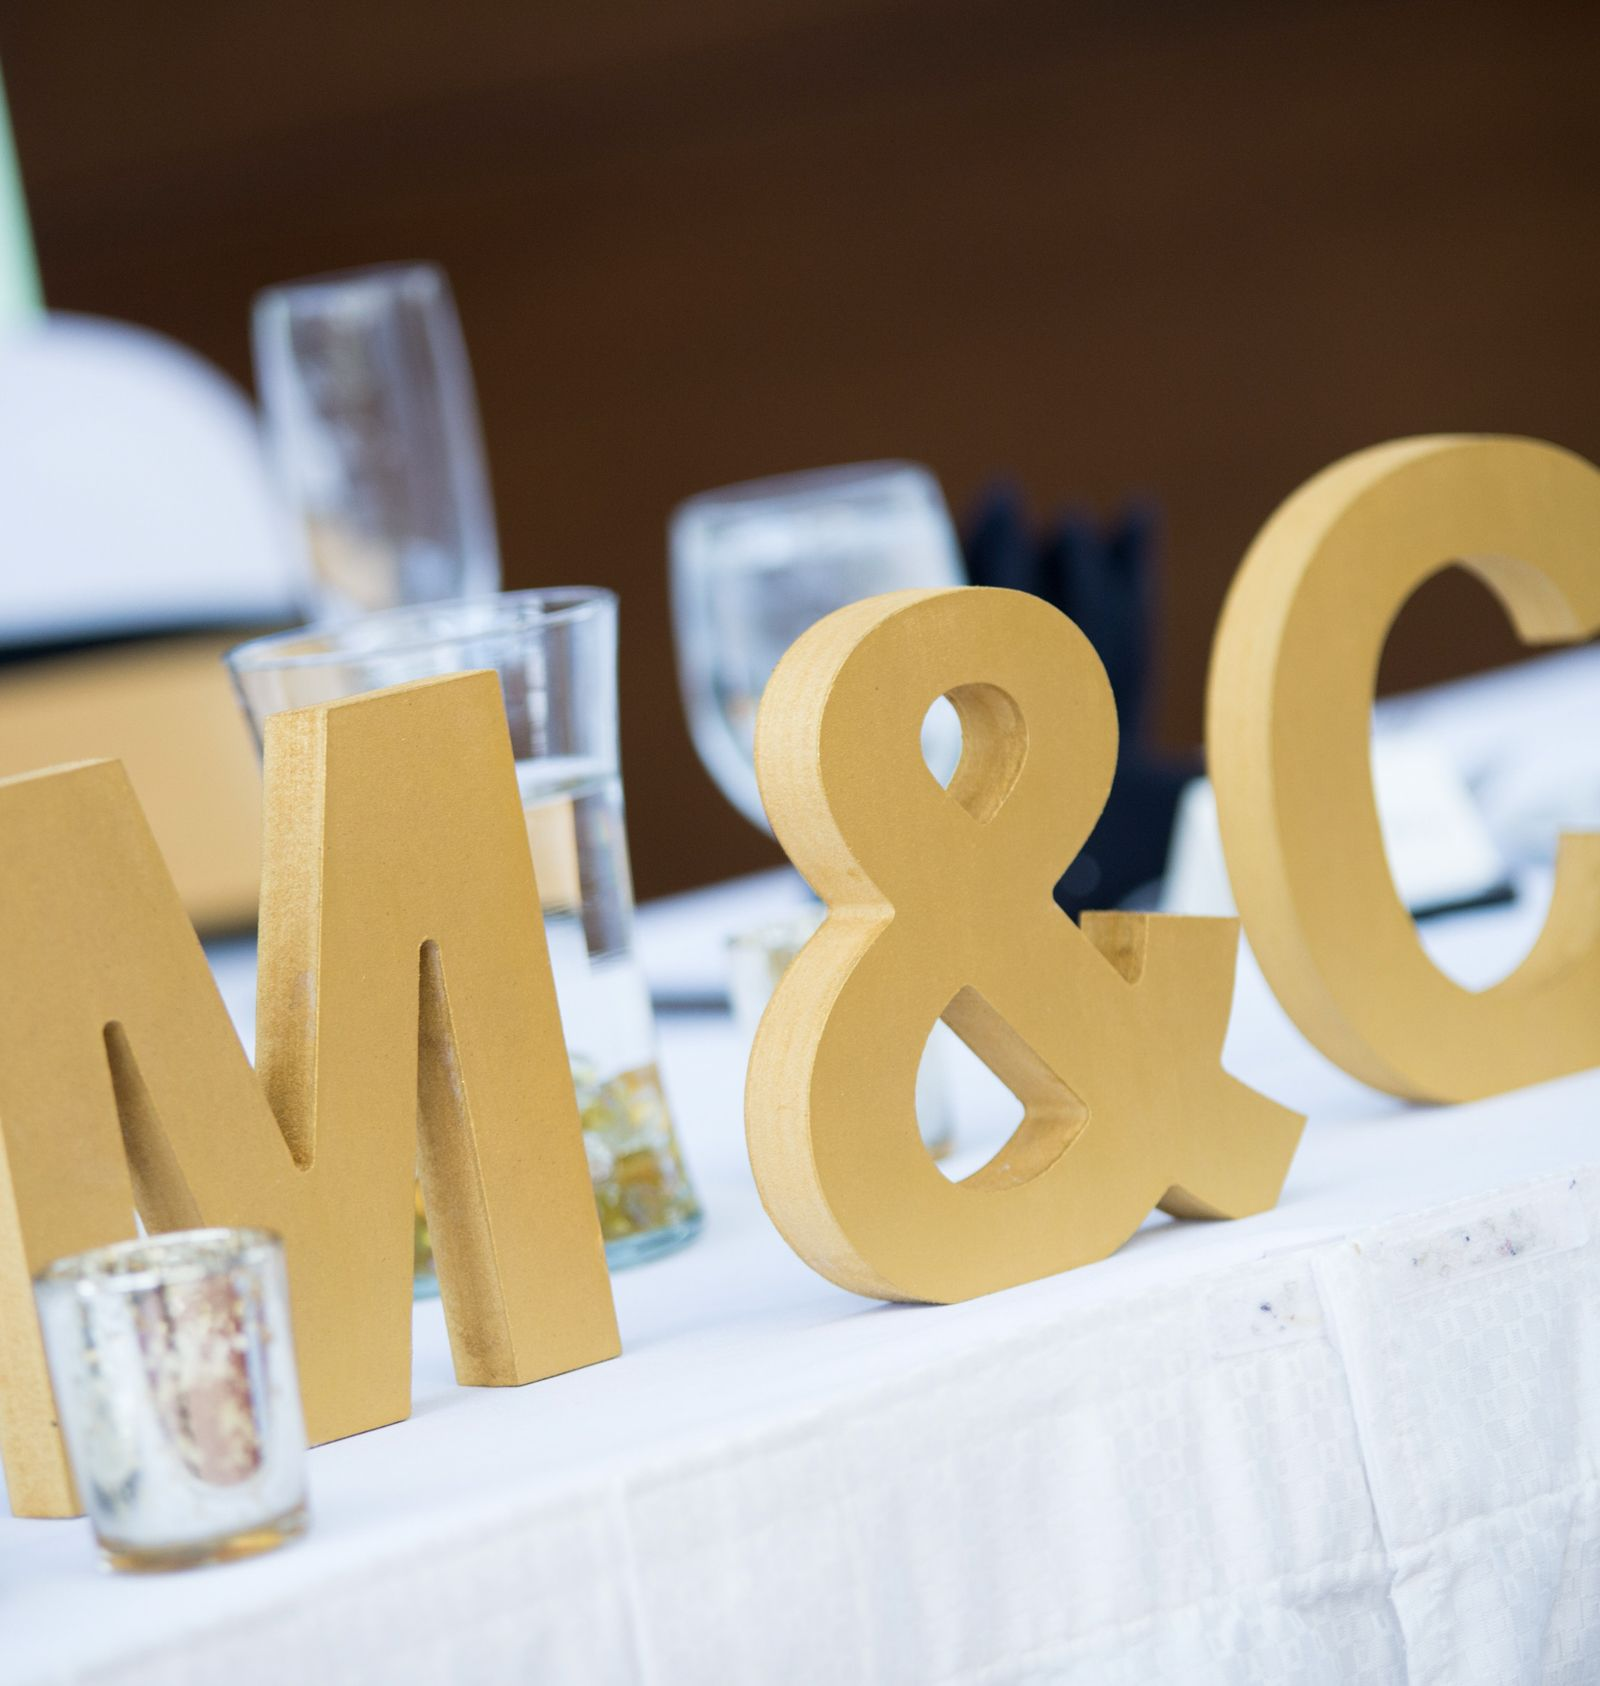 Homemade wedding decoration ideas  Wooden Letters Initials Sign Set for Wedding Table Decor  Handmade